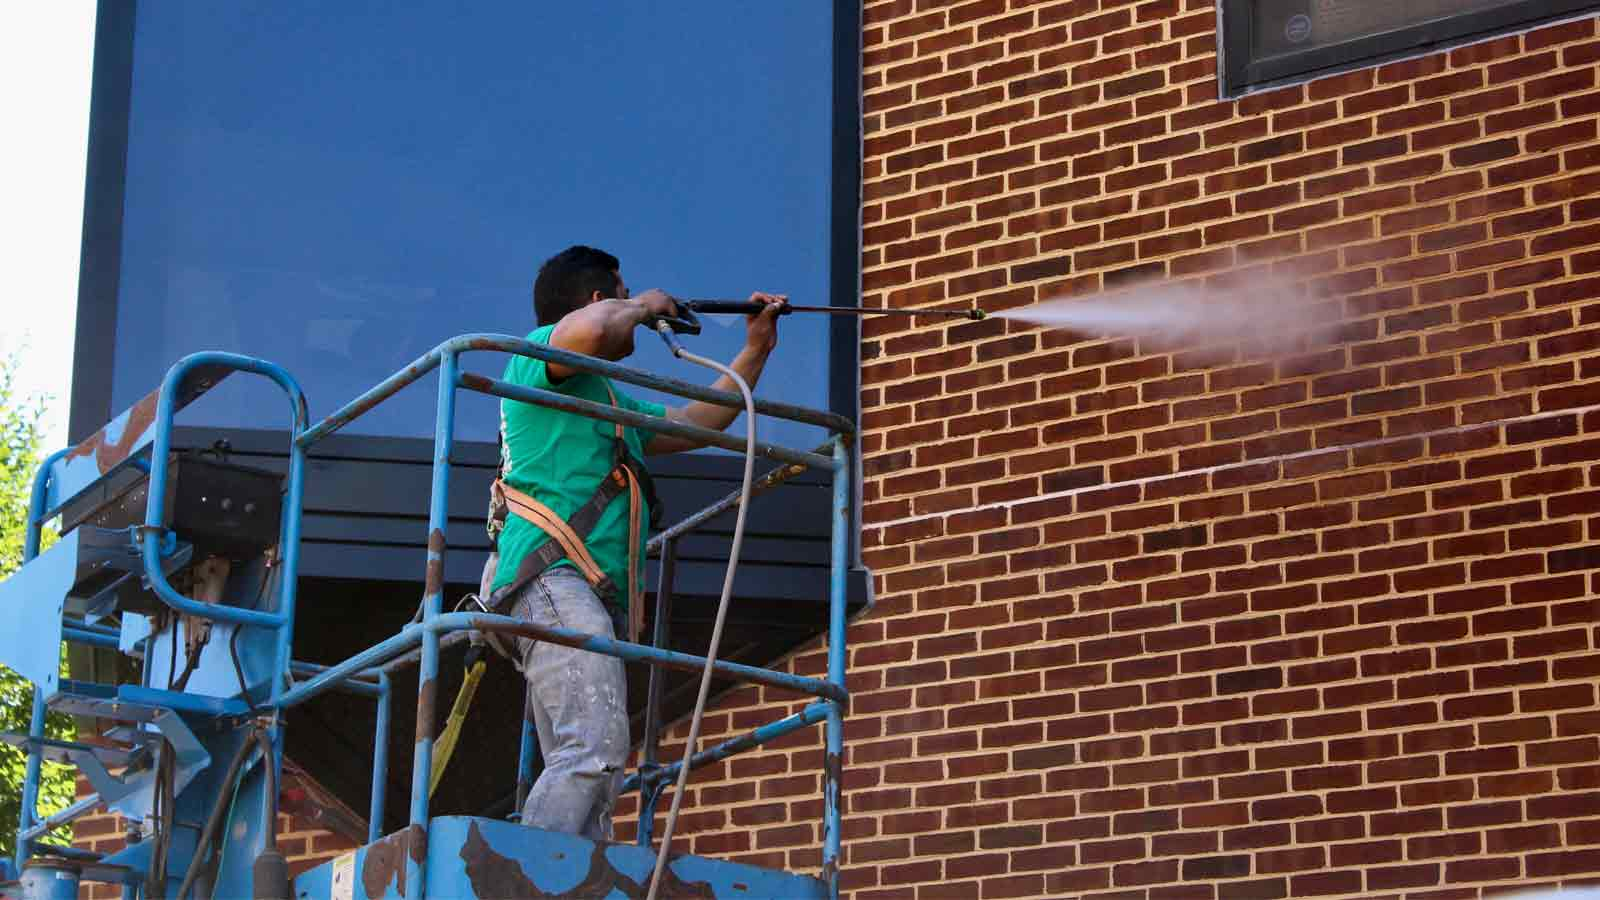 Man powerwashing building